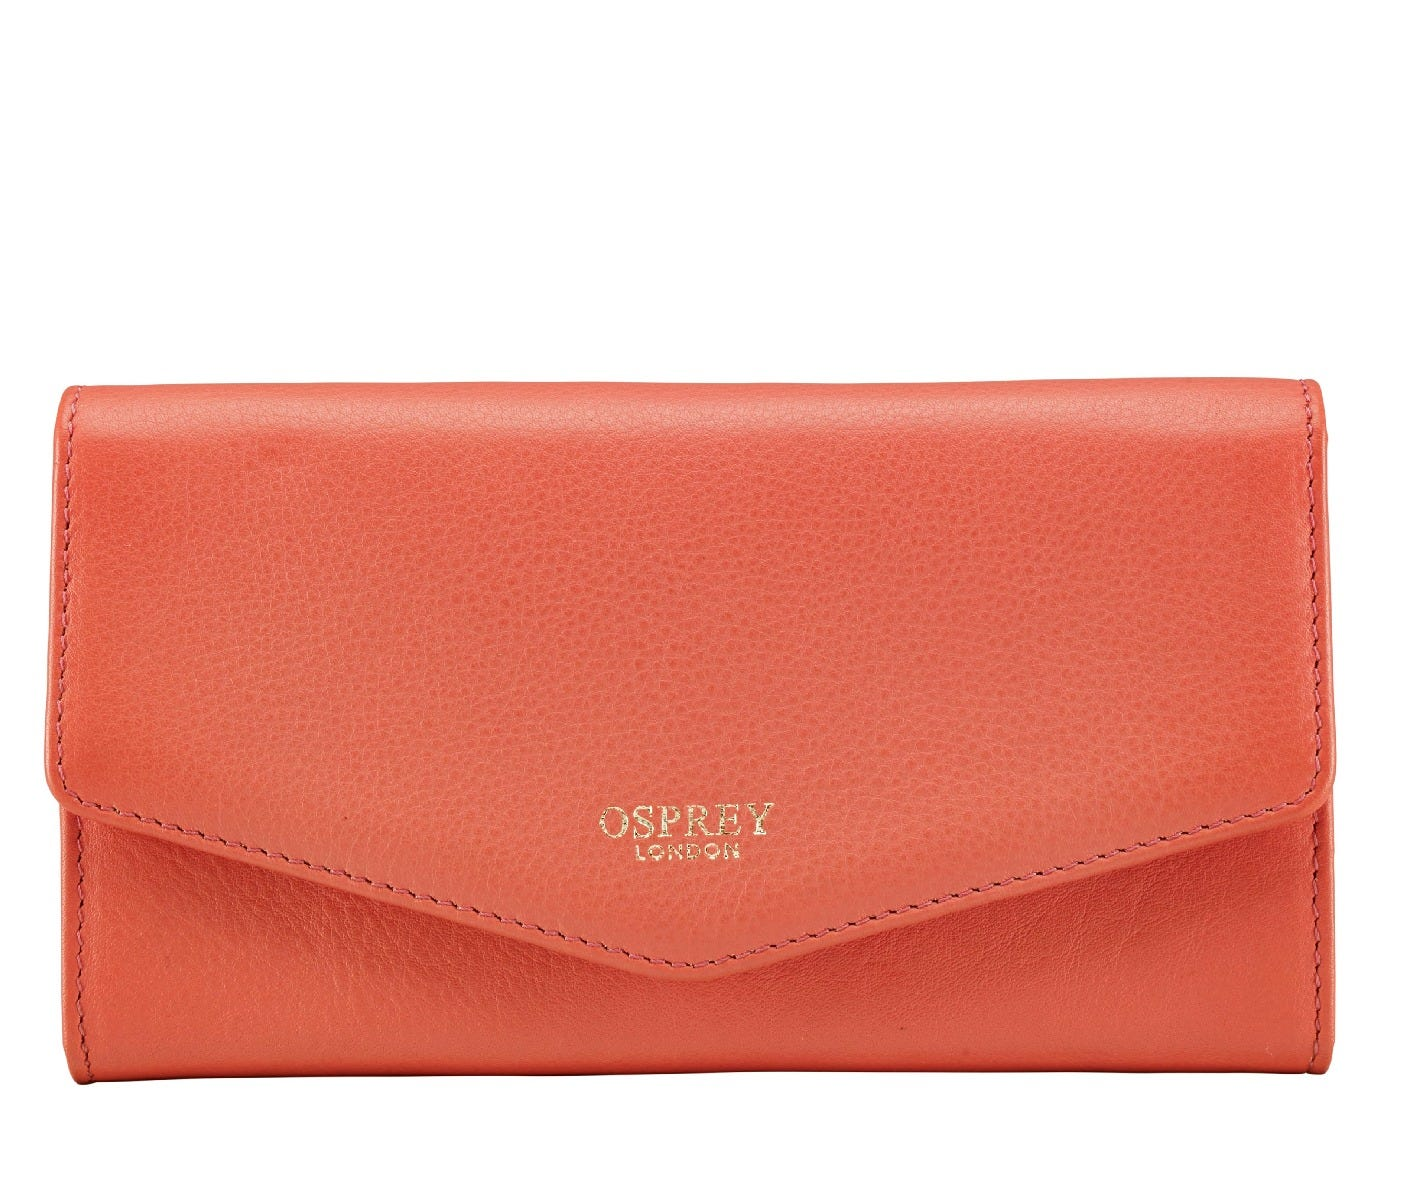 Osprey womens leather gloves - Purses